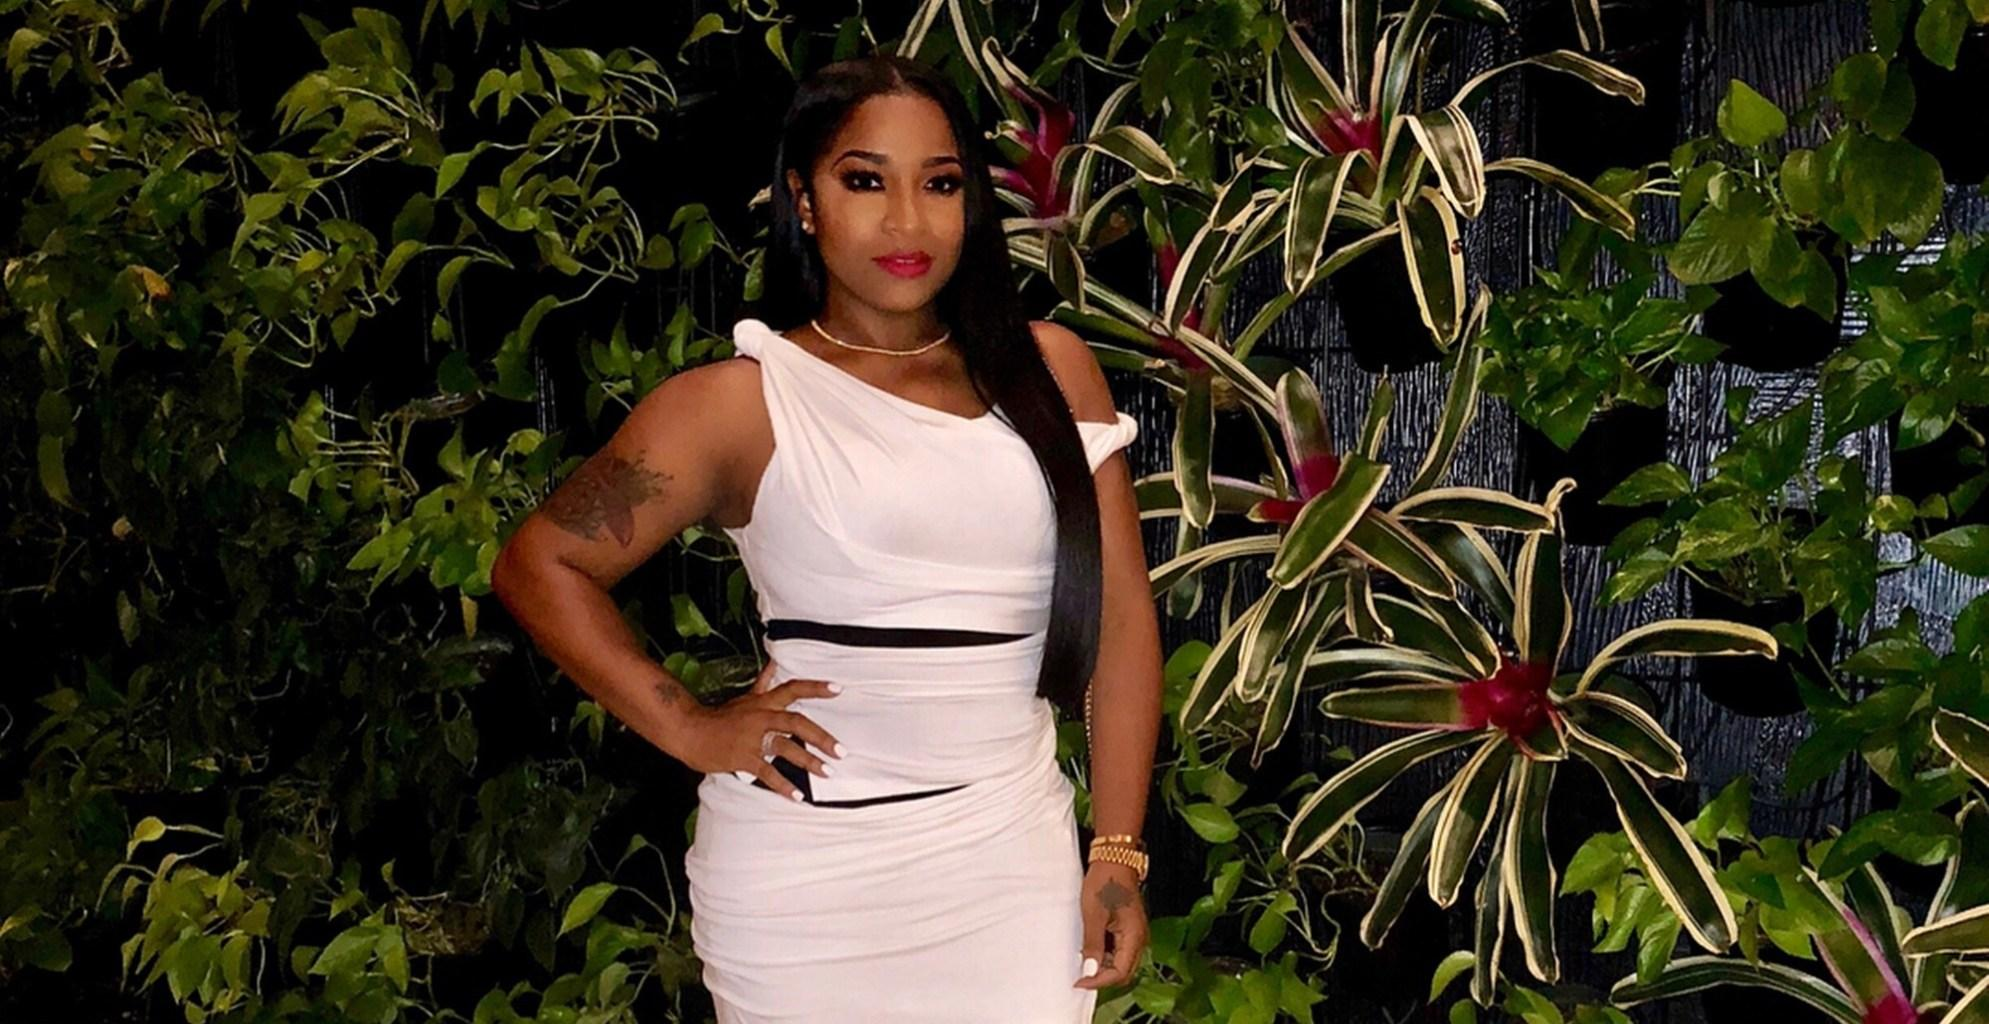 Toya Wright Says Friends Become Her Chosen Family - Find Out Who She's Talking About